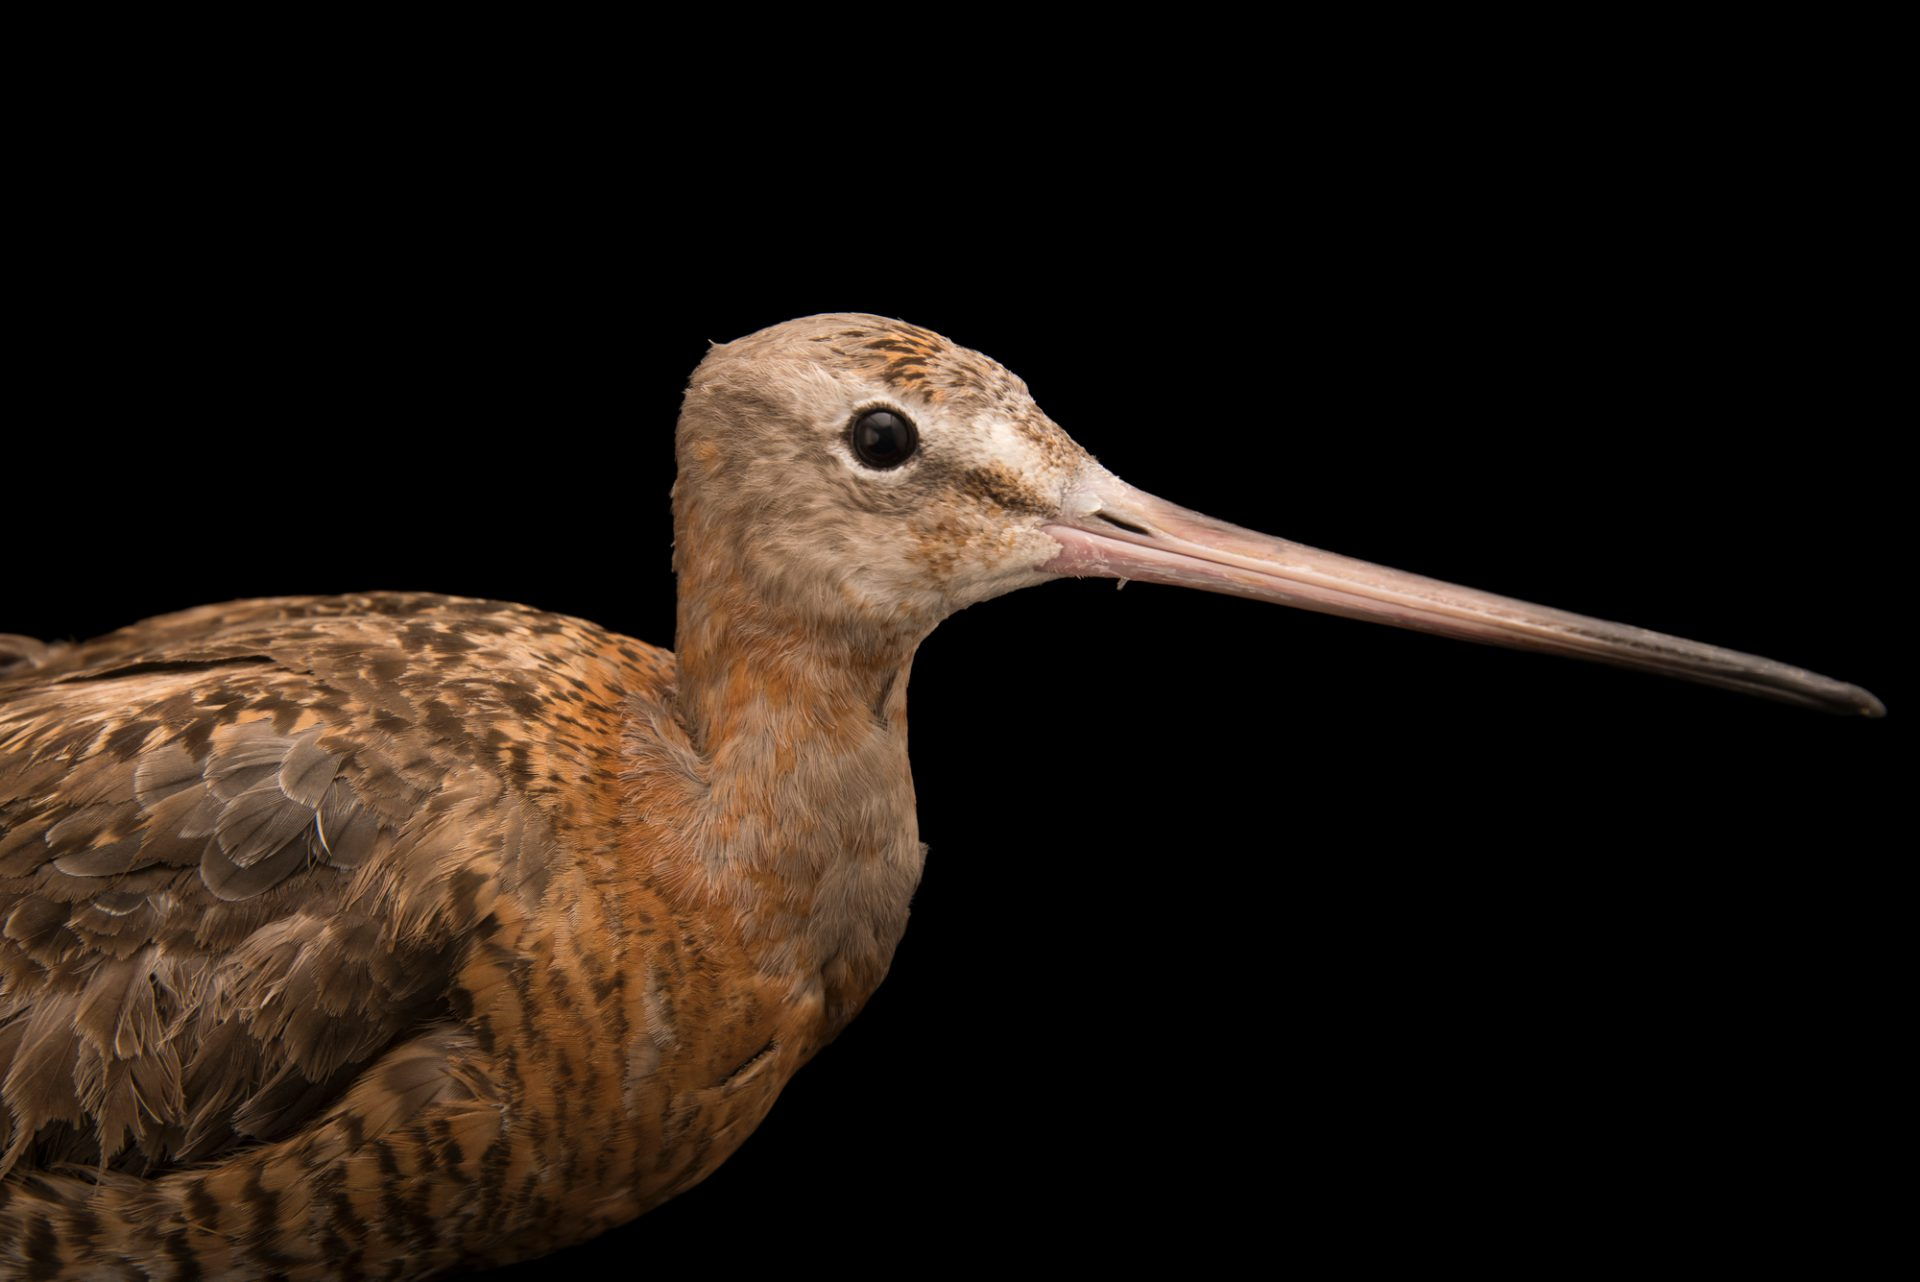 Photo: Black-tailed godwit (Limosa limosa) at Monticello Center in Italy.